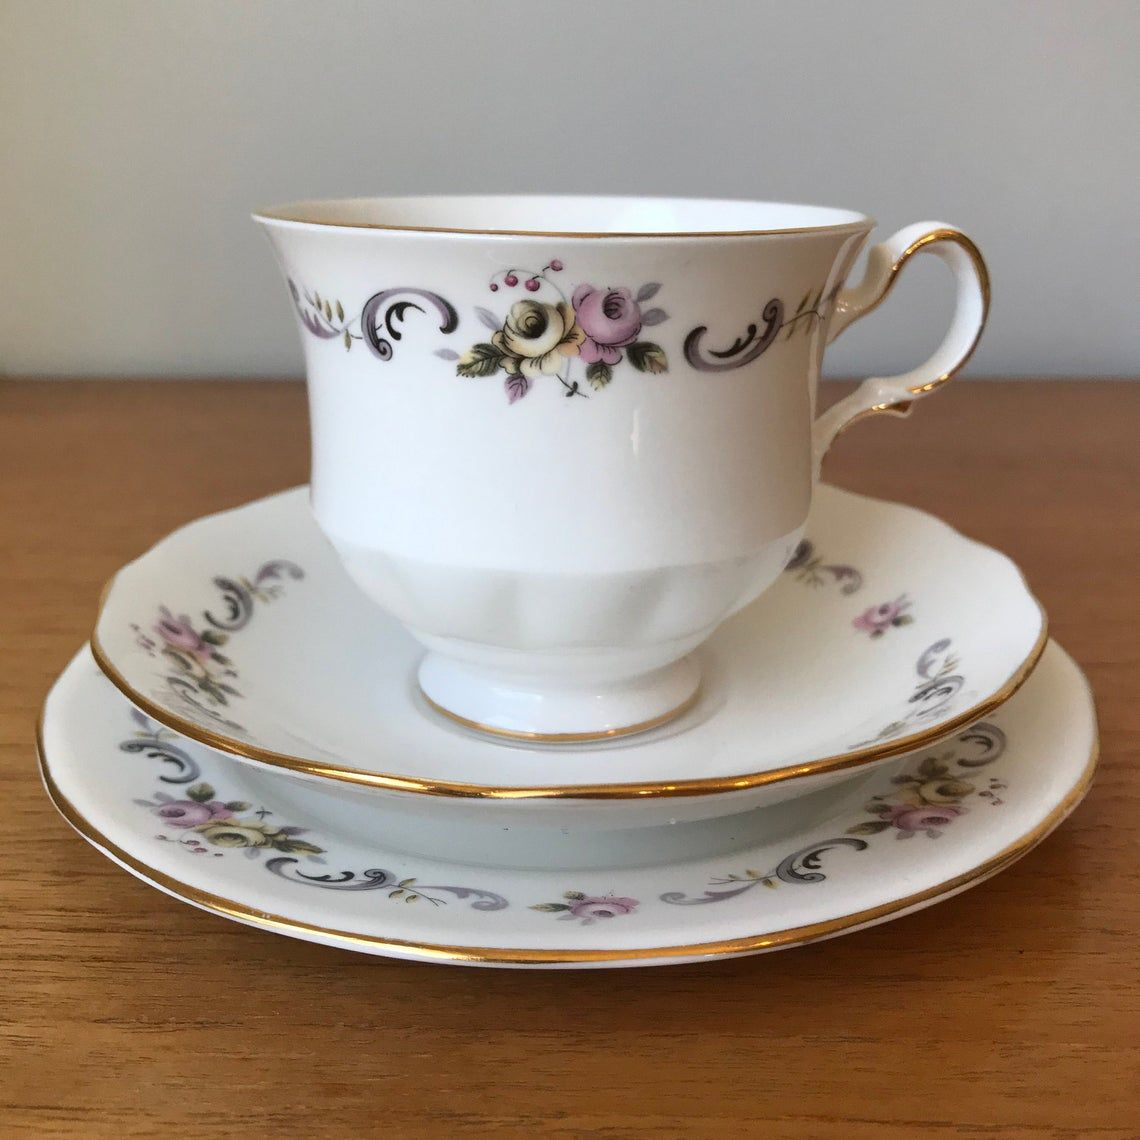 Gainsborough China Tea Cup Saucer and Plate set, Pink and Yellow Rose Teacup Trio with Black and Purple Scrolls